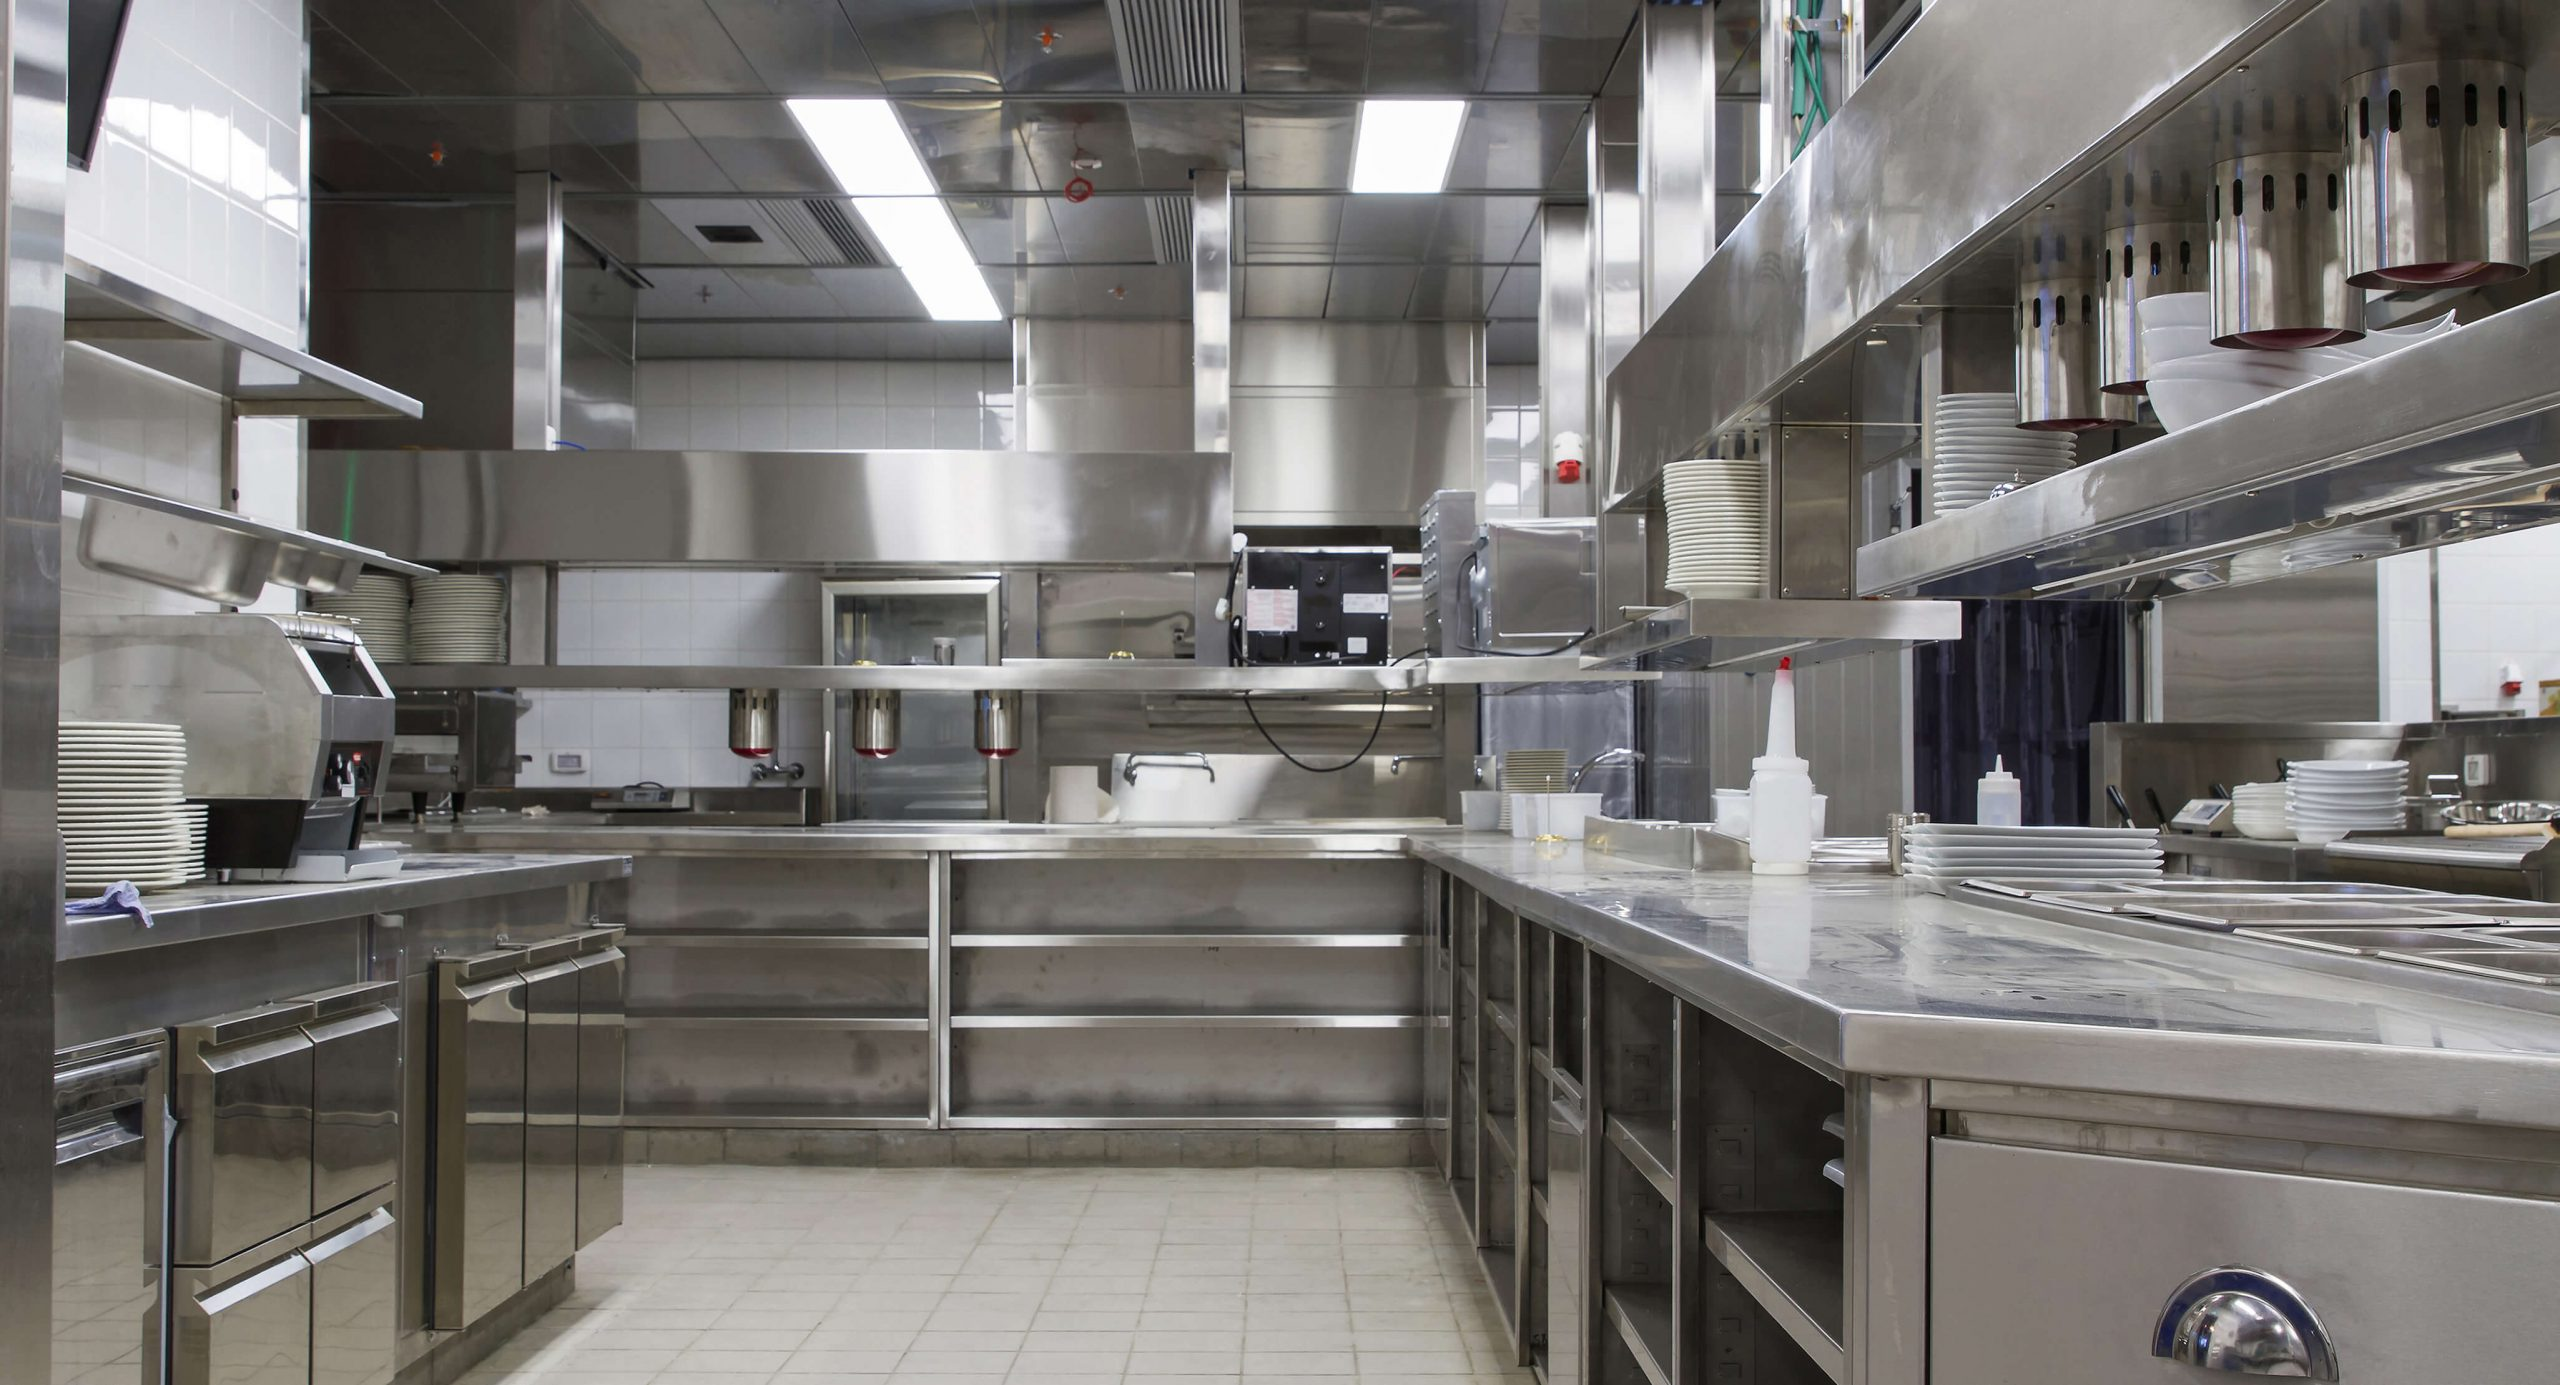 Things to Know About Commercial Kitchen Equipment